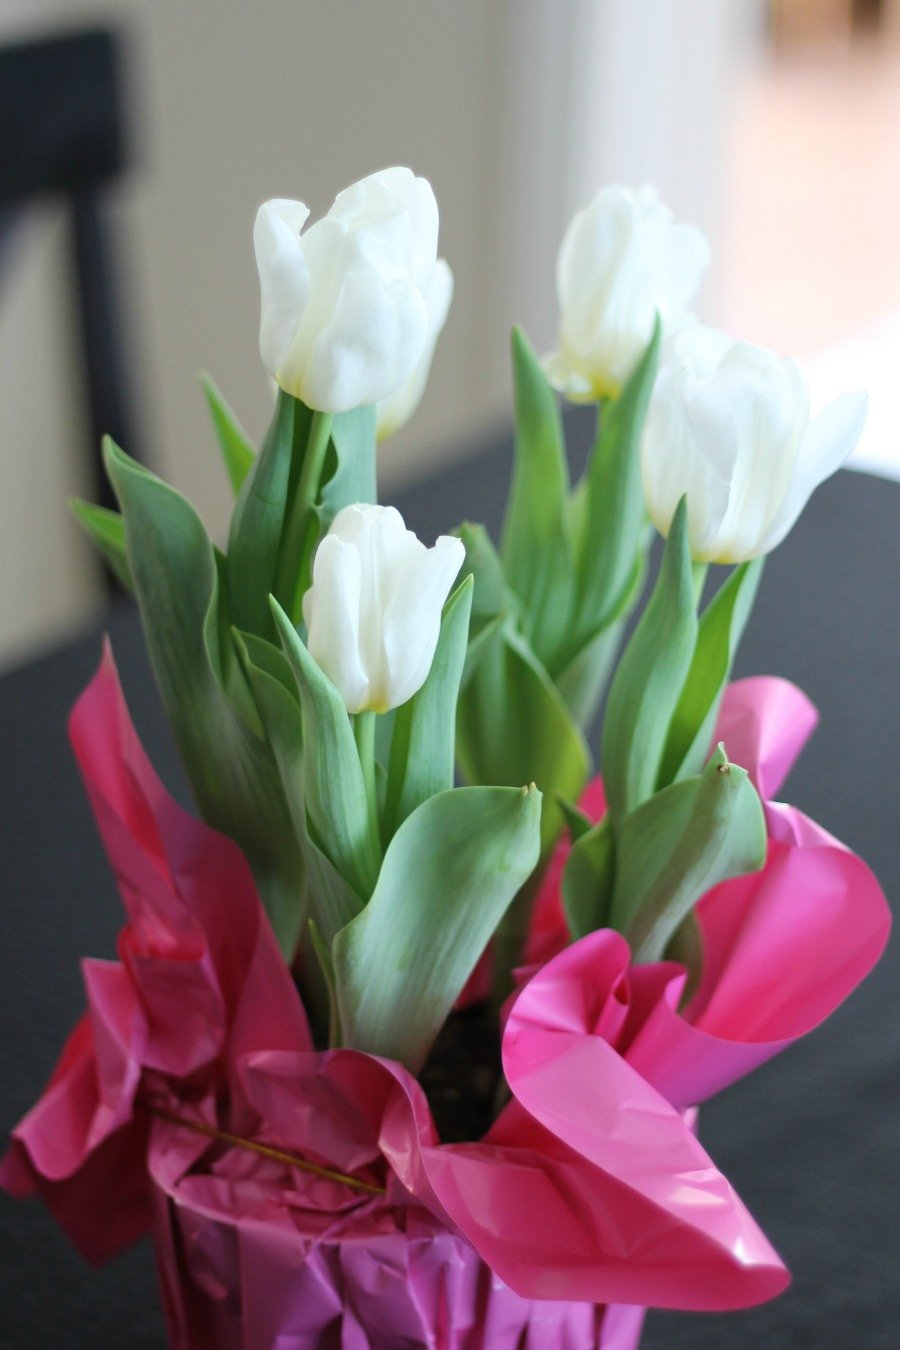 21 Things to Do Before Selling Your Home - Add fresh flowers.